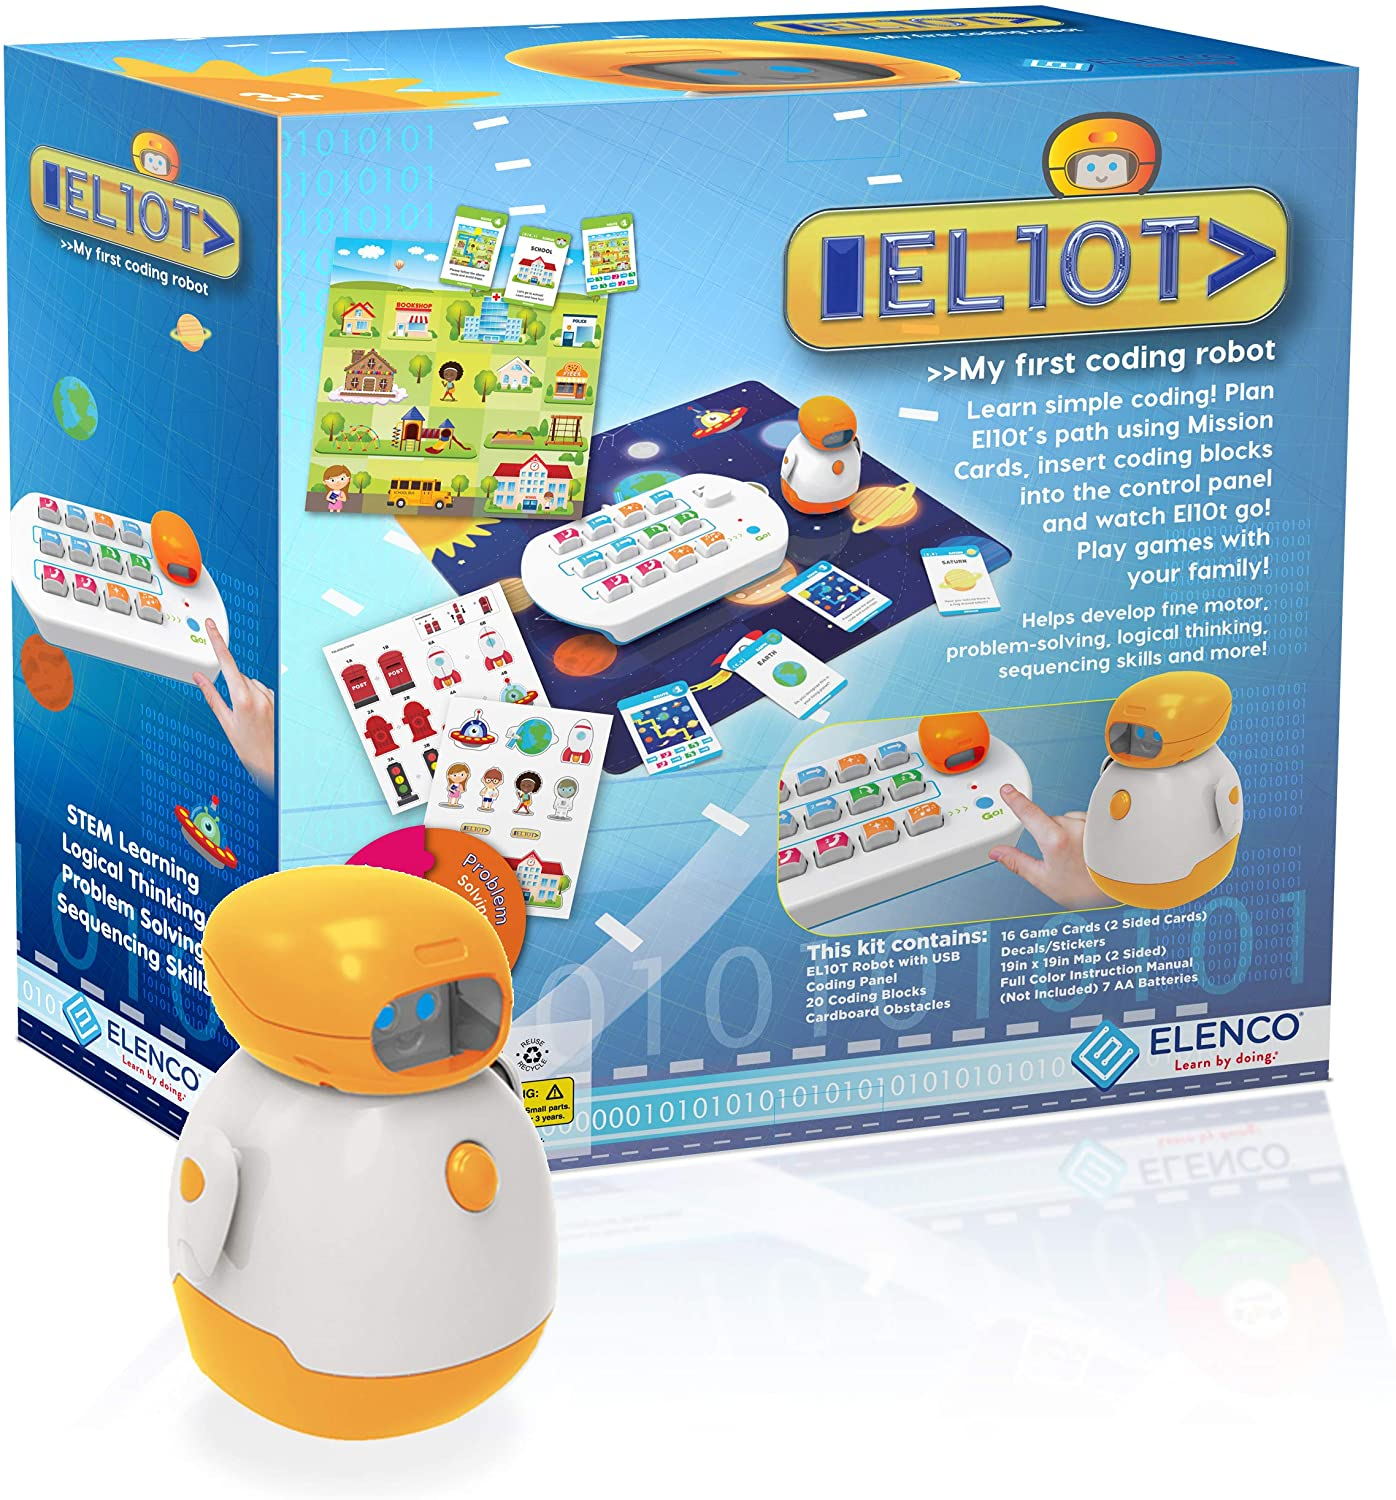 EL10T Coding Robot for Young Children Parts